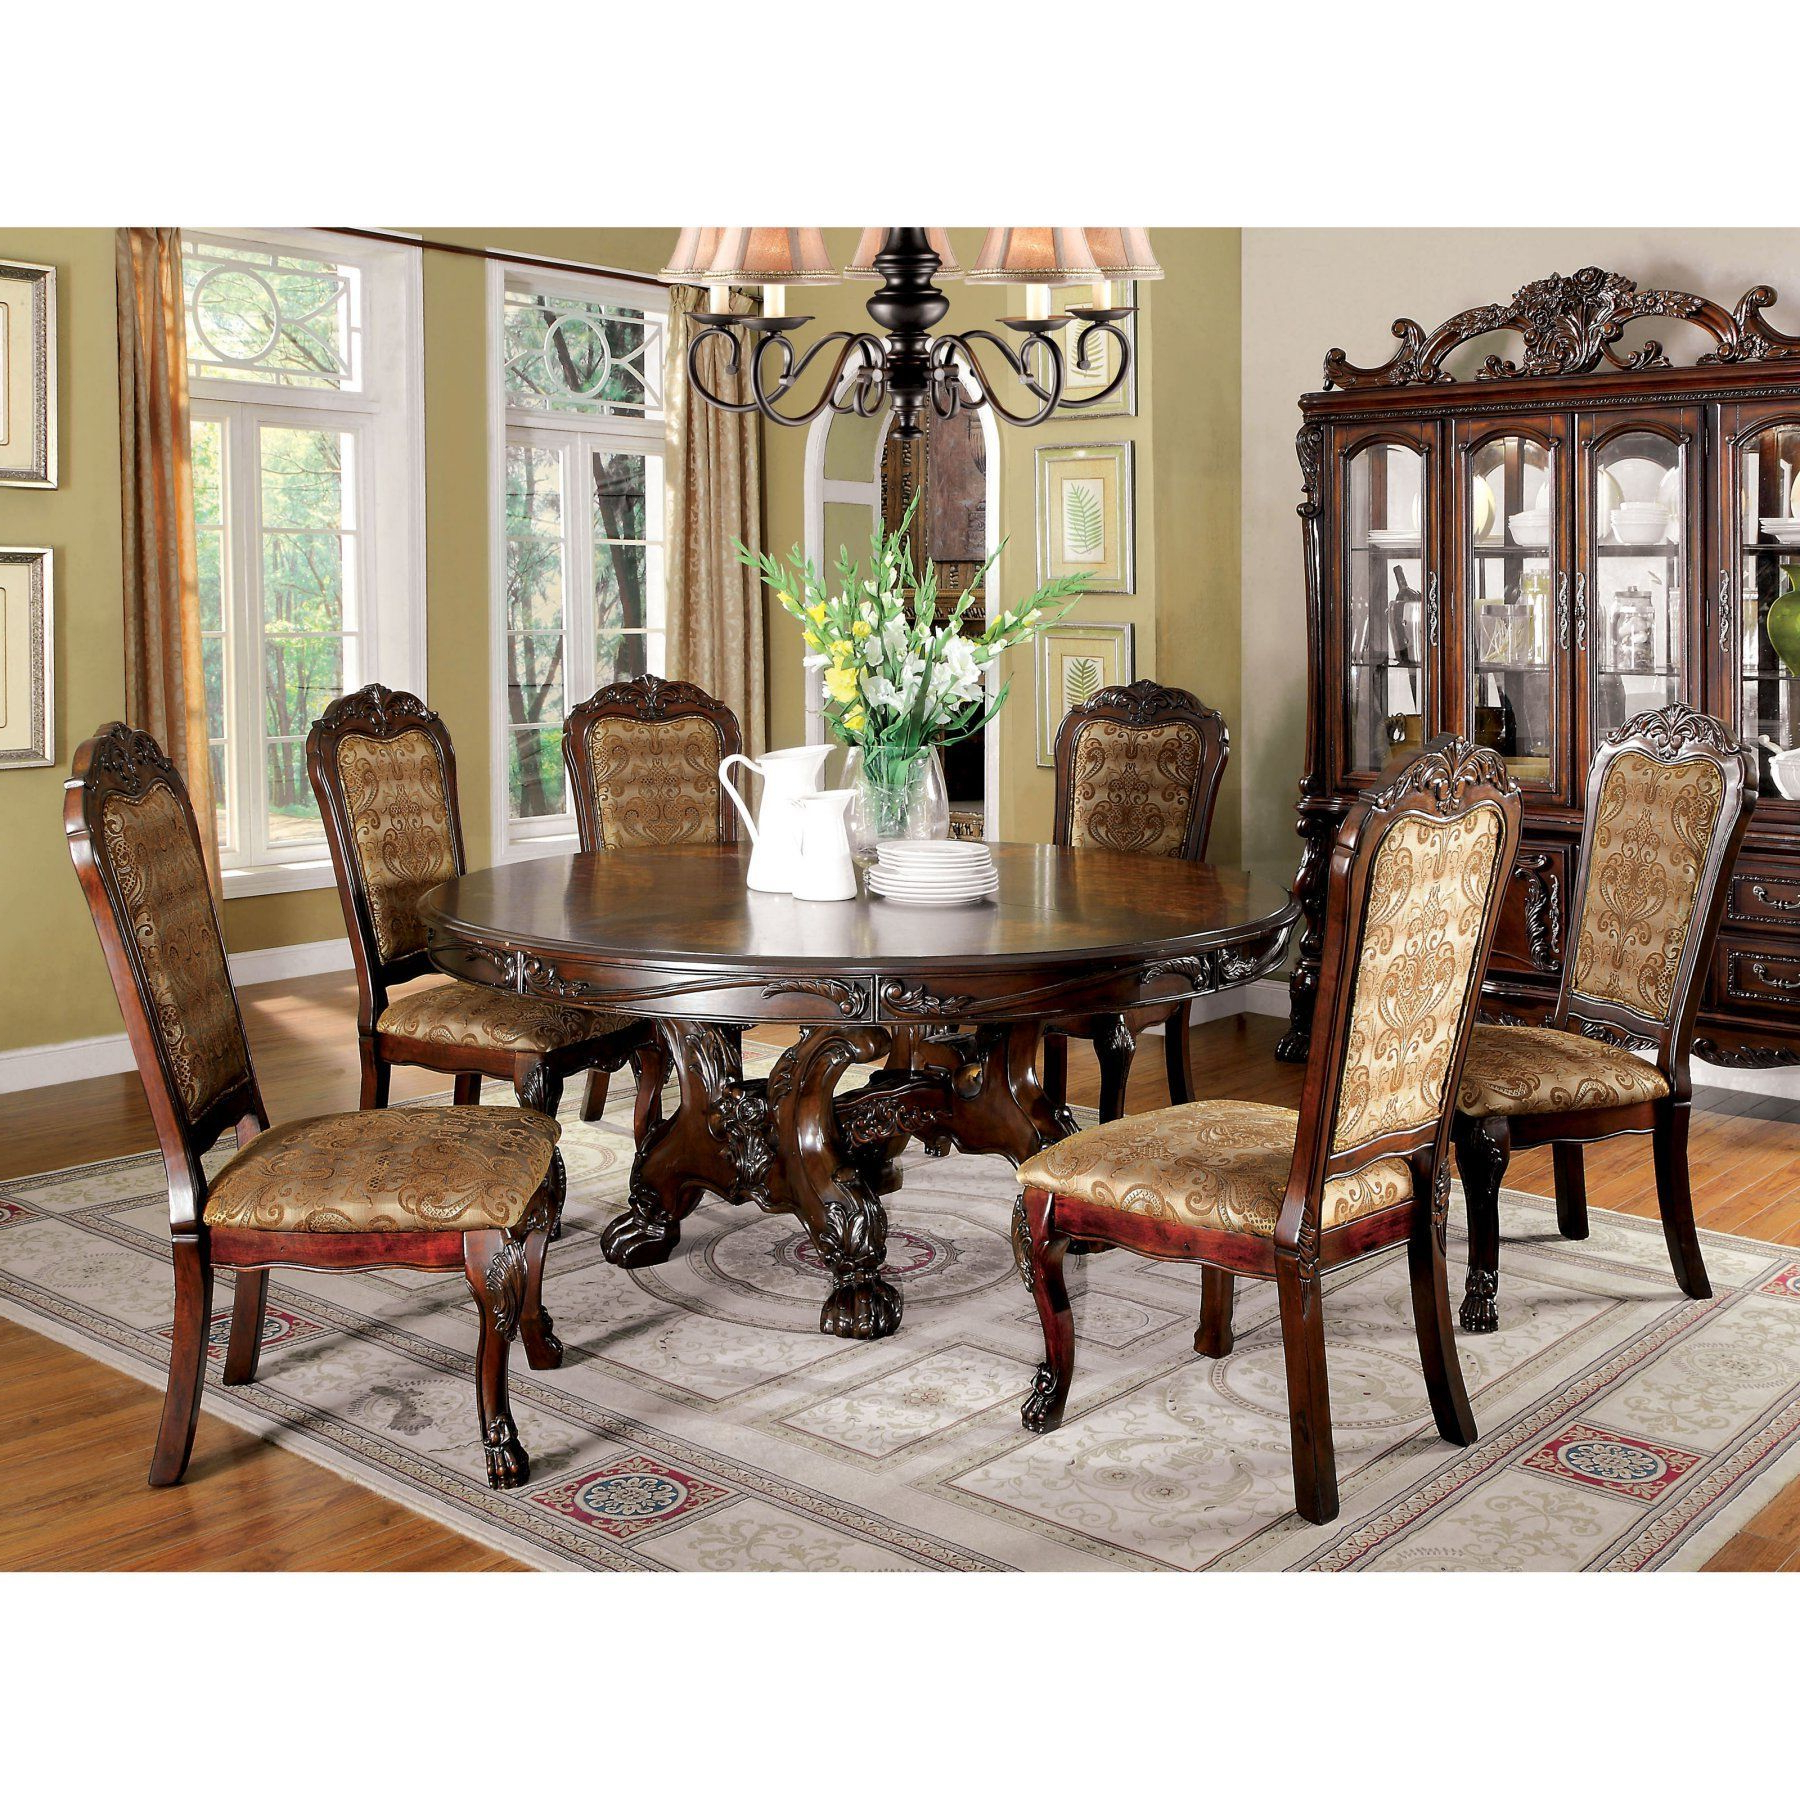 Furniture Of America Evangeline Elegant 7 Piece Round Dining Intended For Newest Elegance Large Round Dining Tables (View 16 of 30)